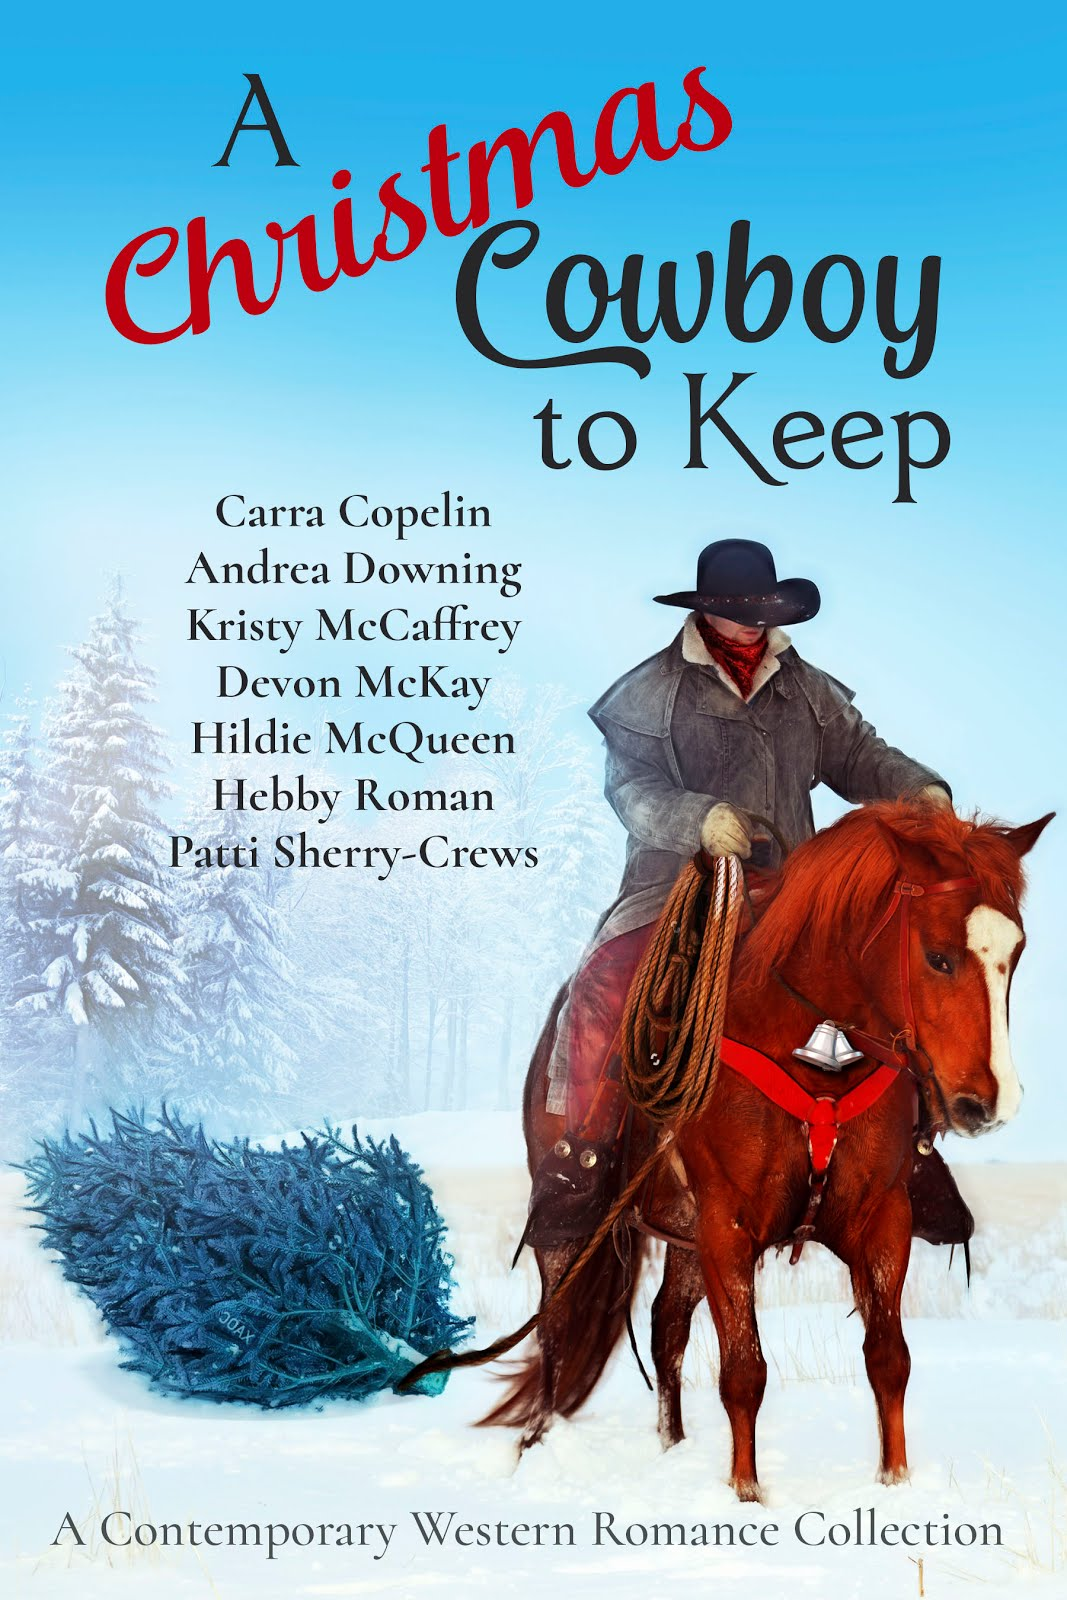 A Christmas Cowboy To Keep - Now Available